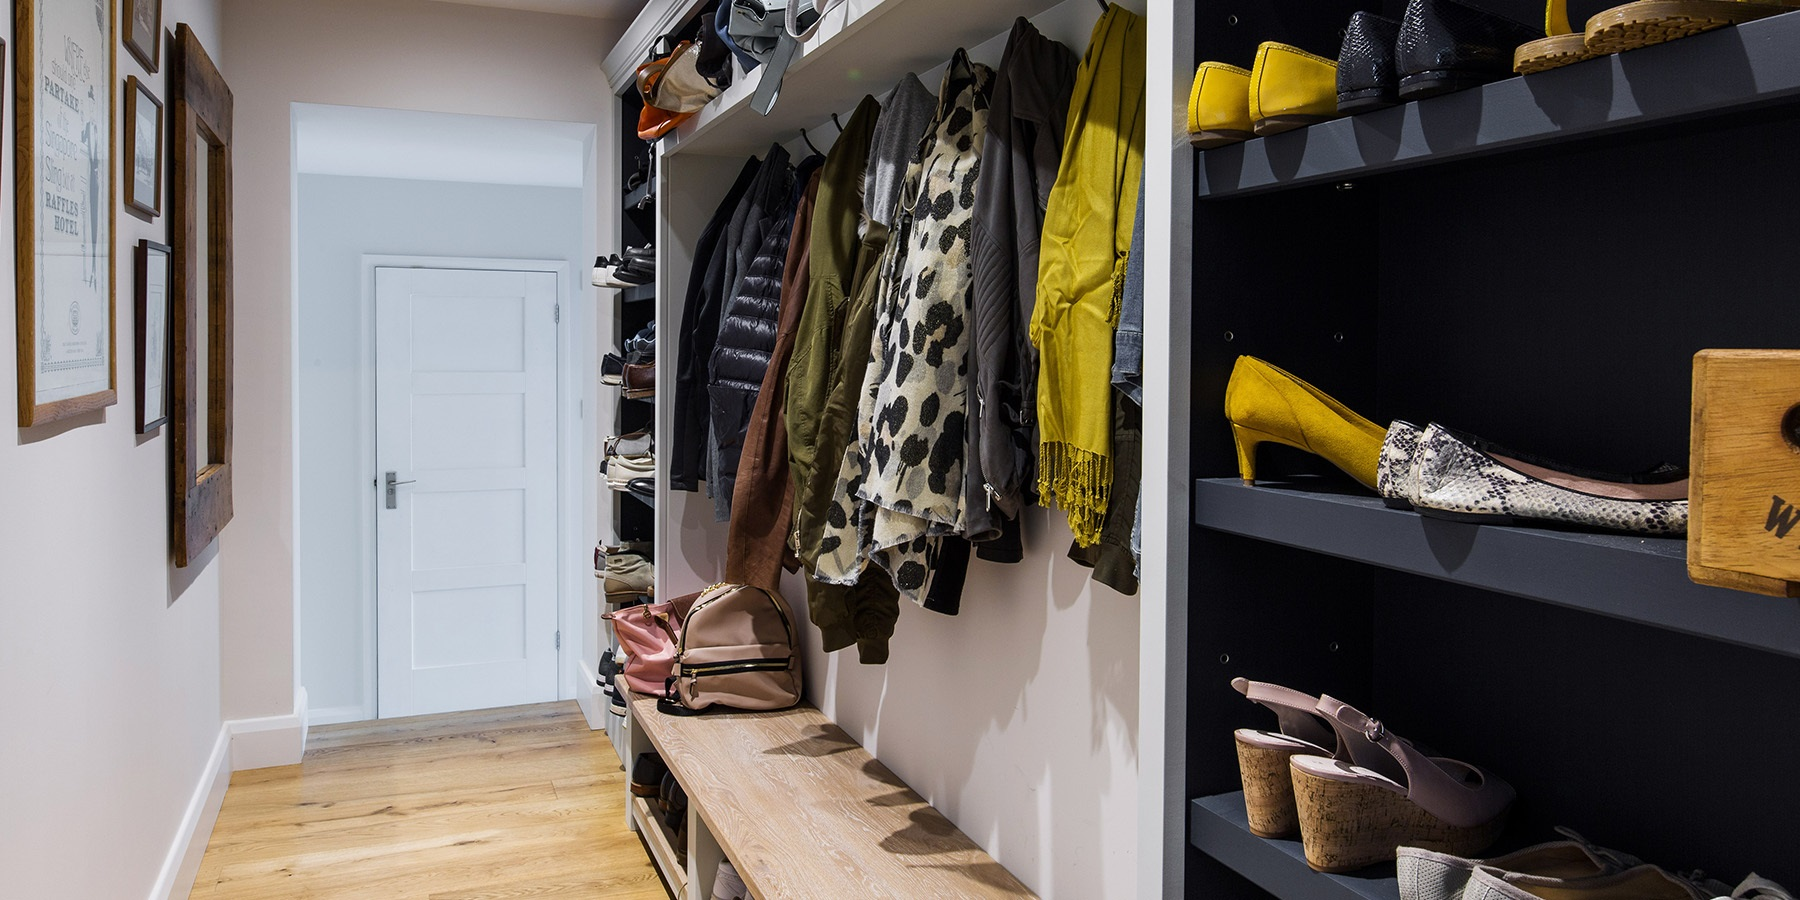 Bespoke Bootroom & Entrance Hall Storage - Made-to-measure entrance hall storage solutions with bench seating and coat hooks.